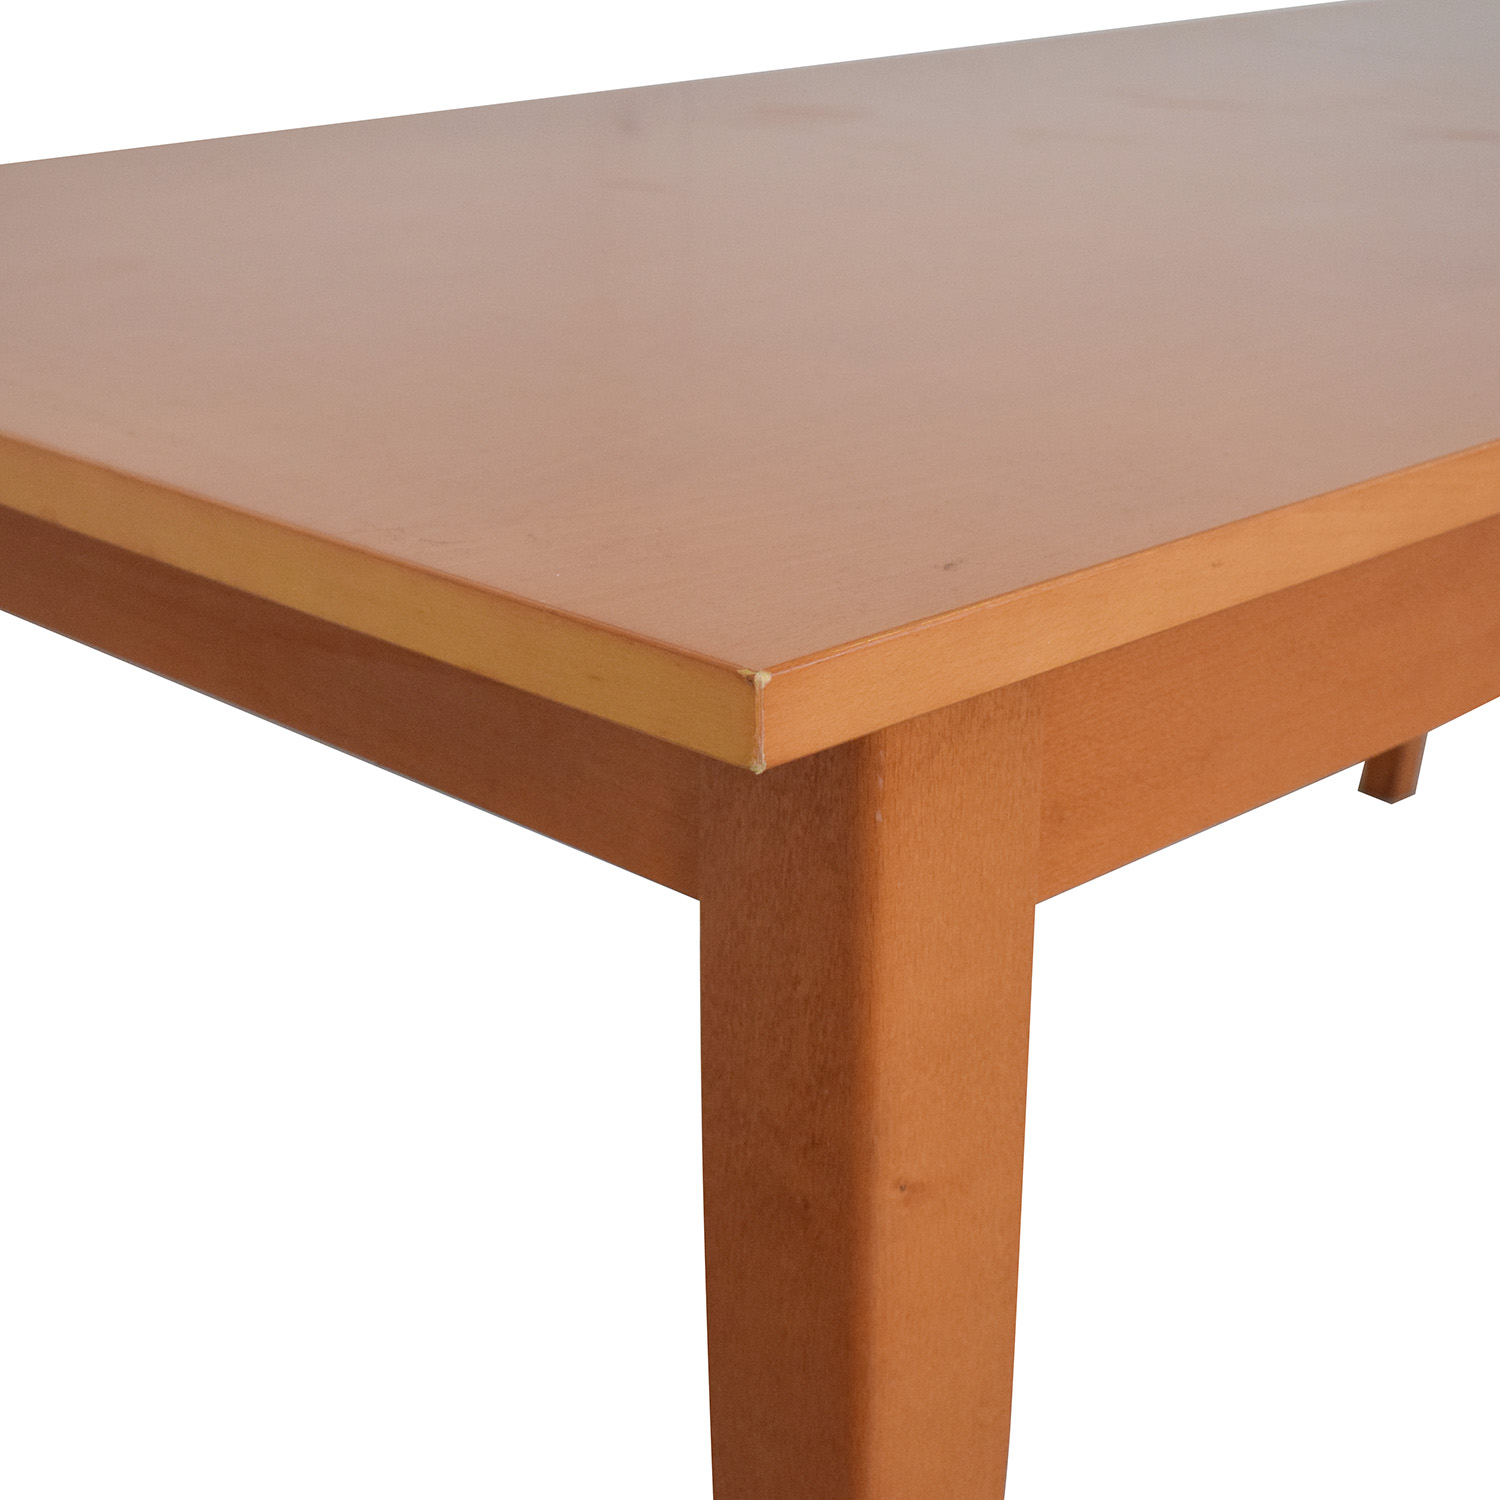 Storehouse Storehouse Extension Dining Table brown